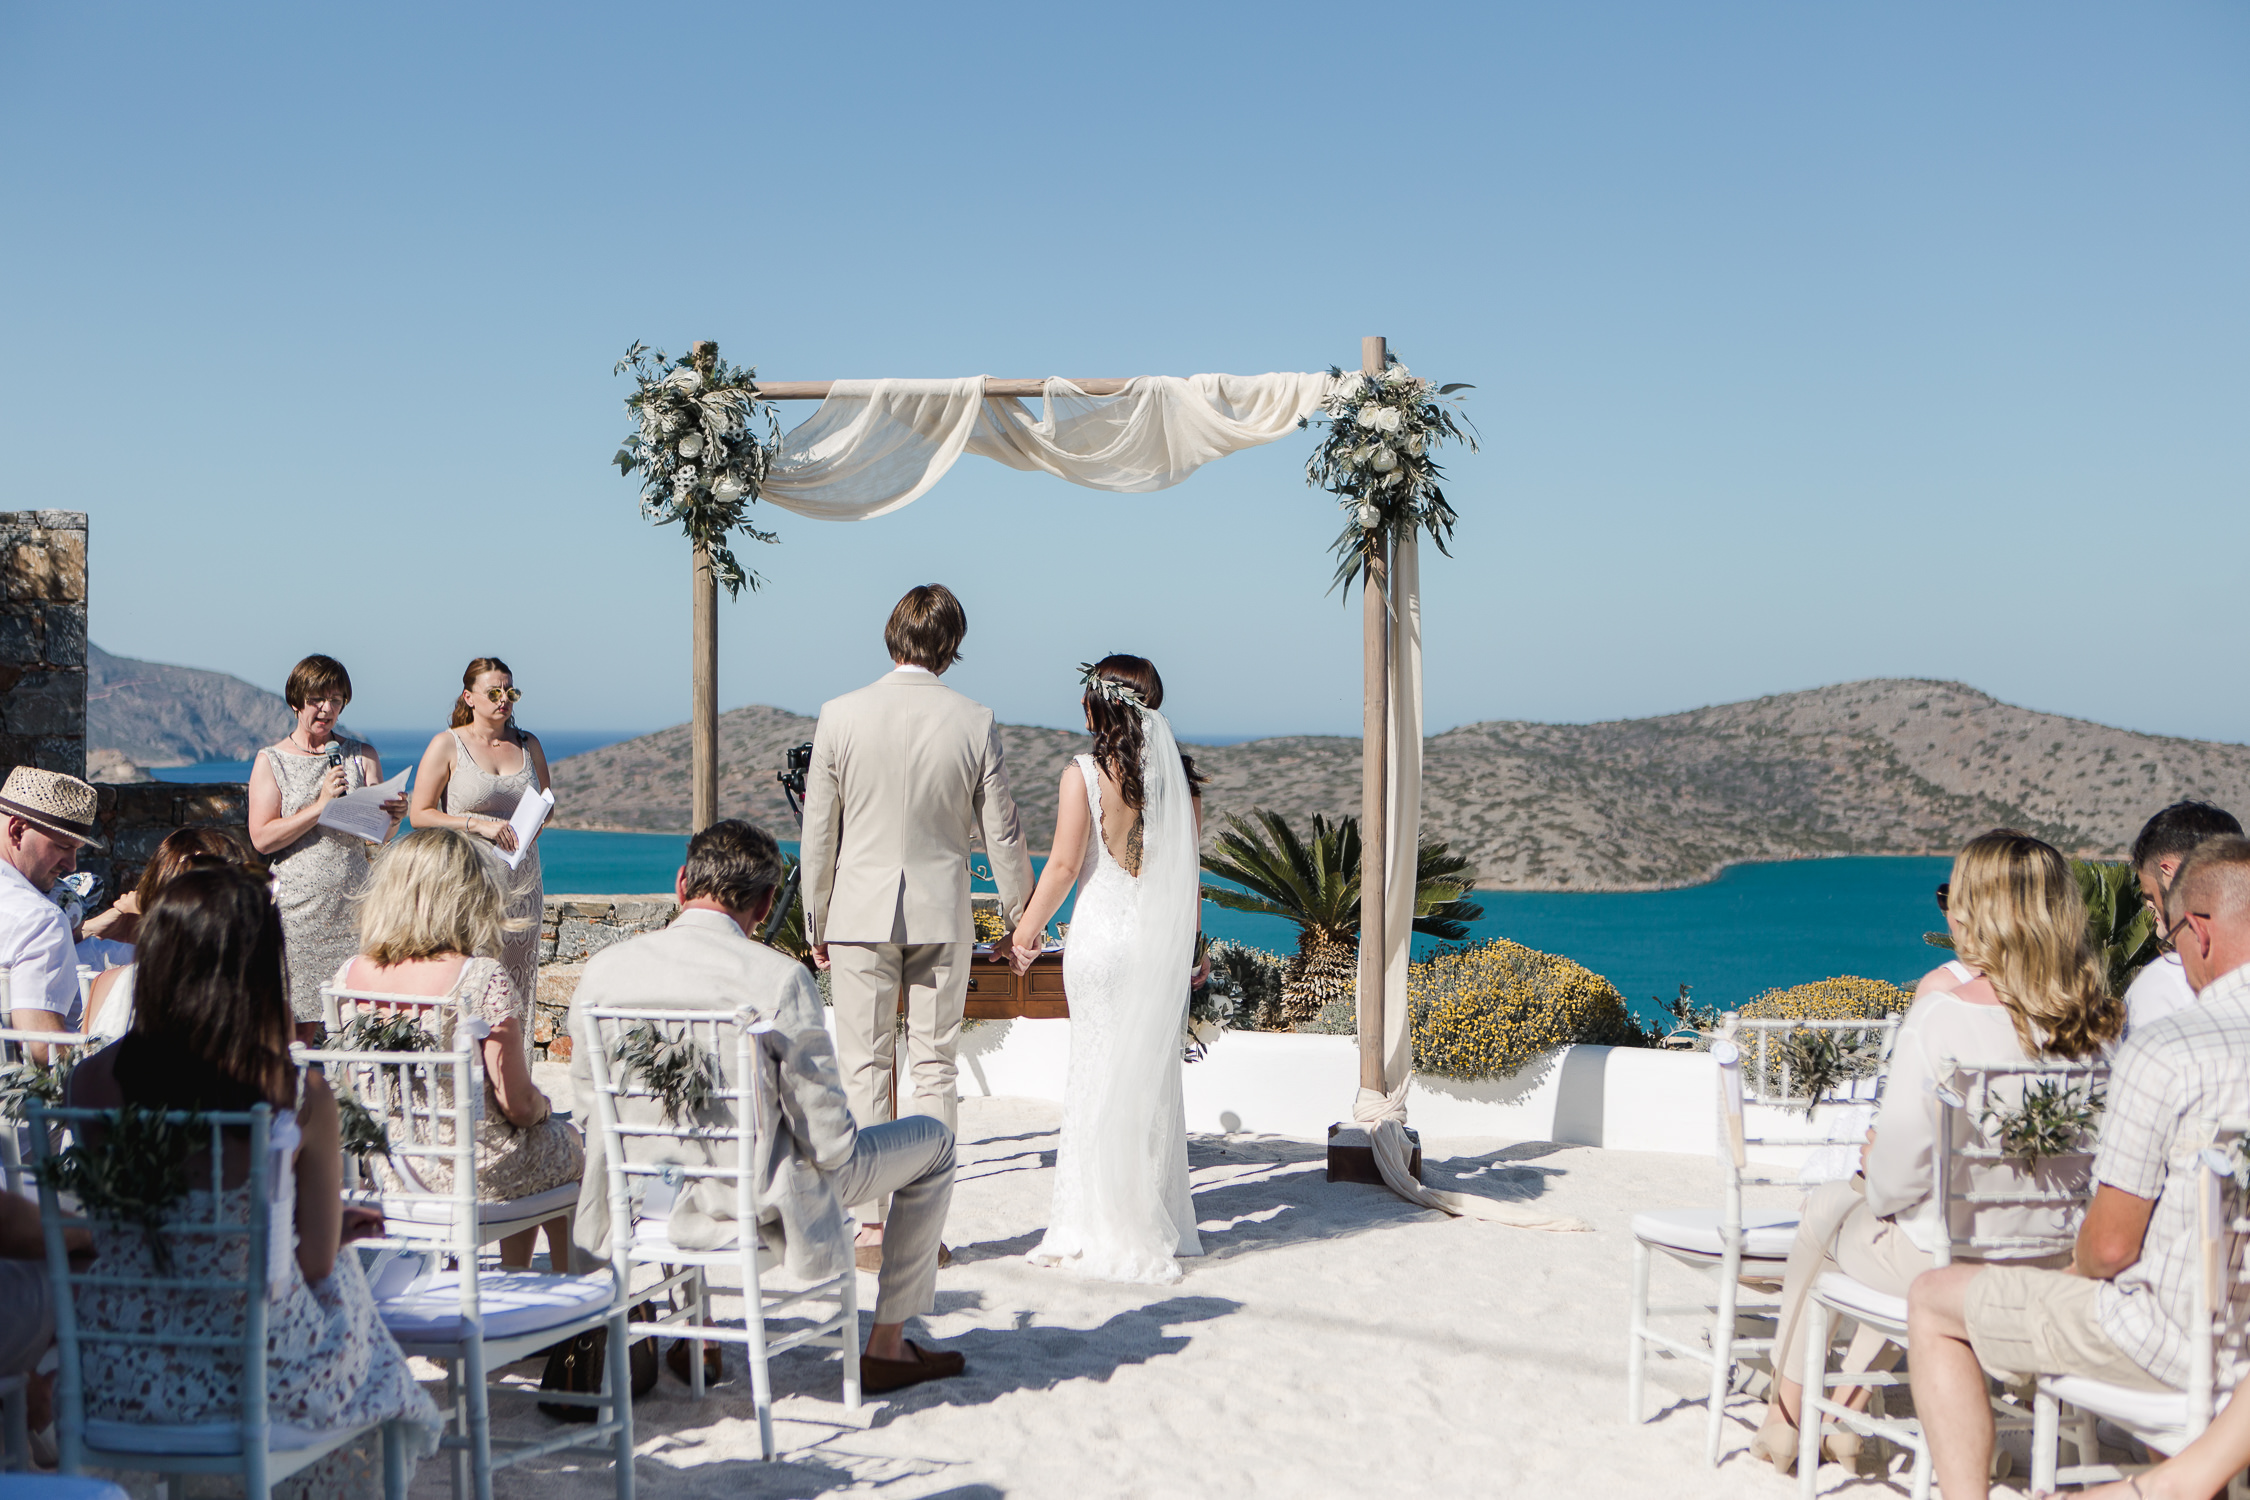 Fotomagoria - Elounda - Crete - Greece Wedding 154.jpg